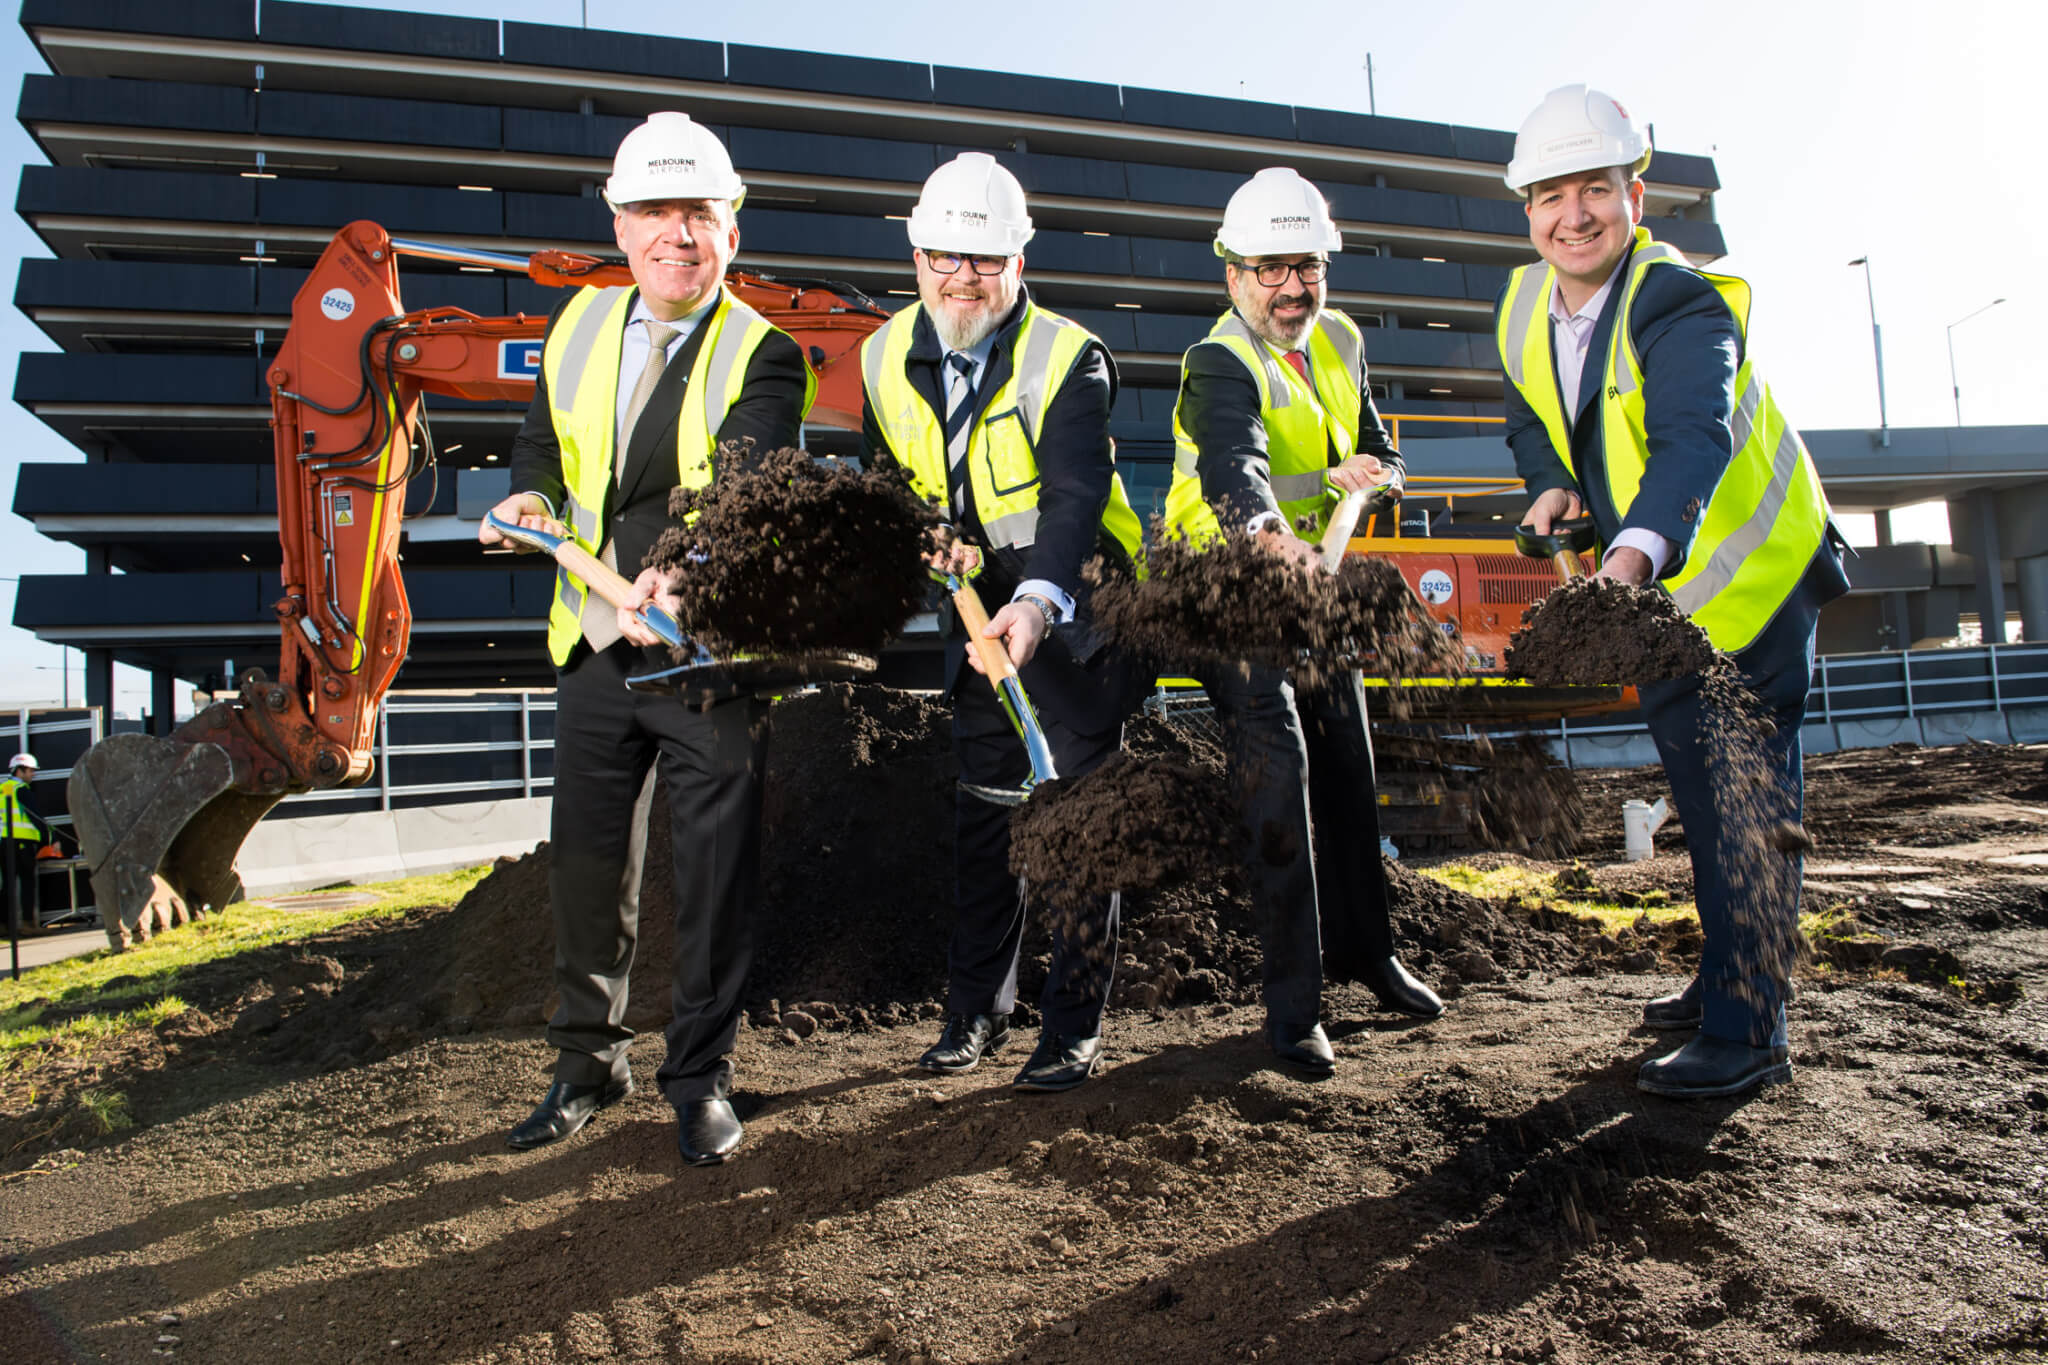 Accor merges Novotel and Ibis with a future hotel at Melbourne Airport